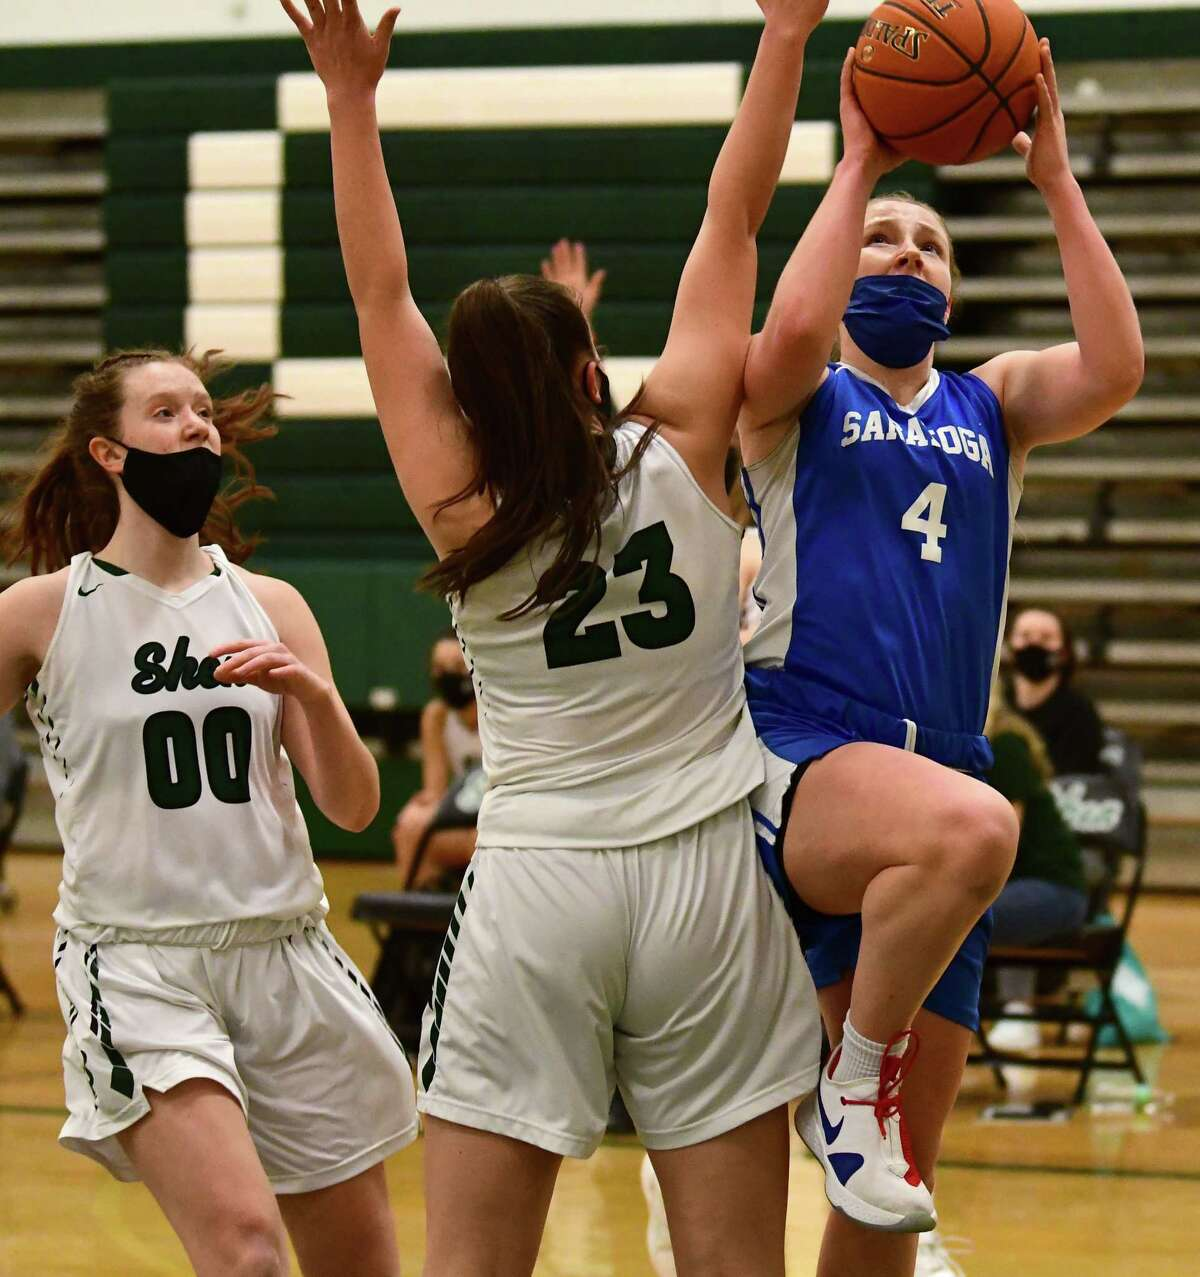 Saratoga's Abby Ray takes a shot defended by Shenendehowa's Meghan Huerterduring a basketball game on Friday, March 12, 2021 in Clifton Park, N.Y. (Lori Van Buren/Times Union)